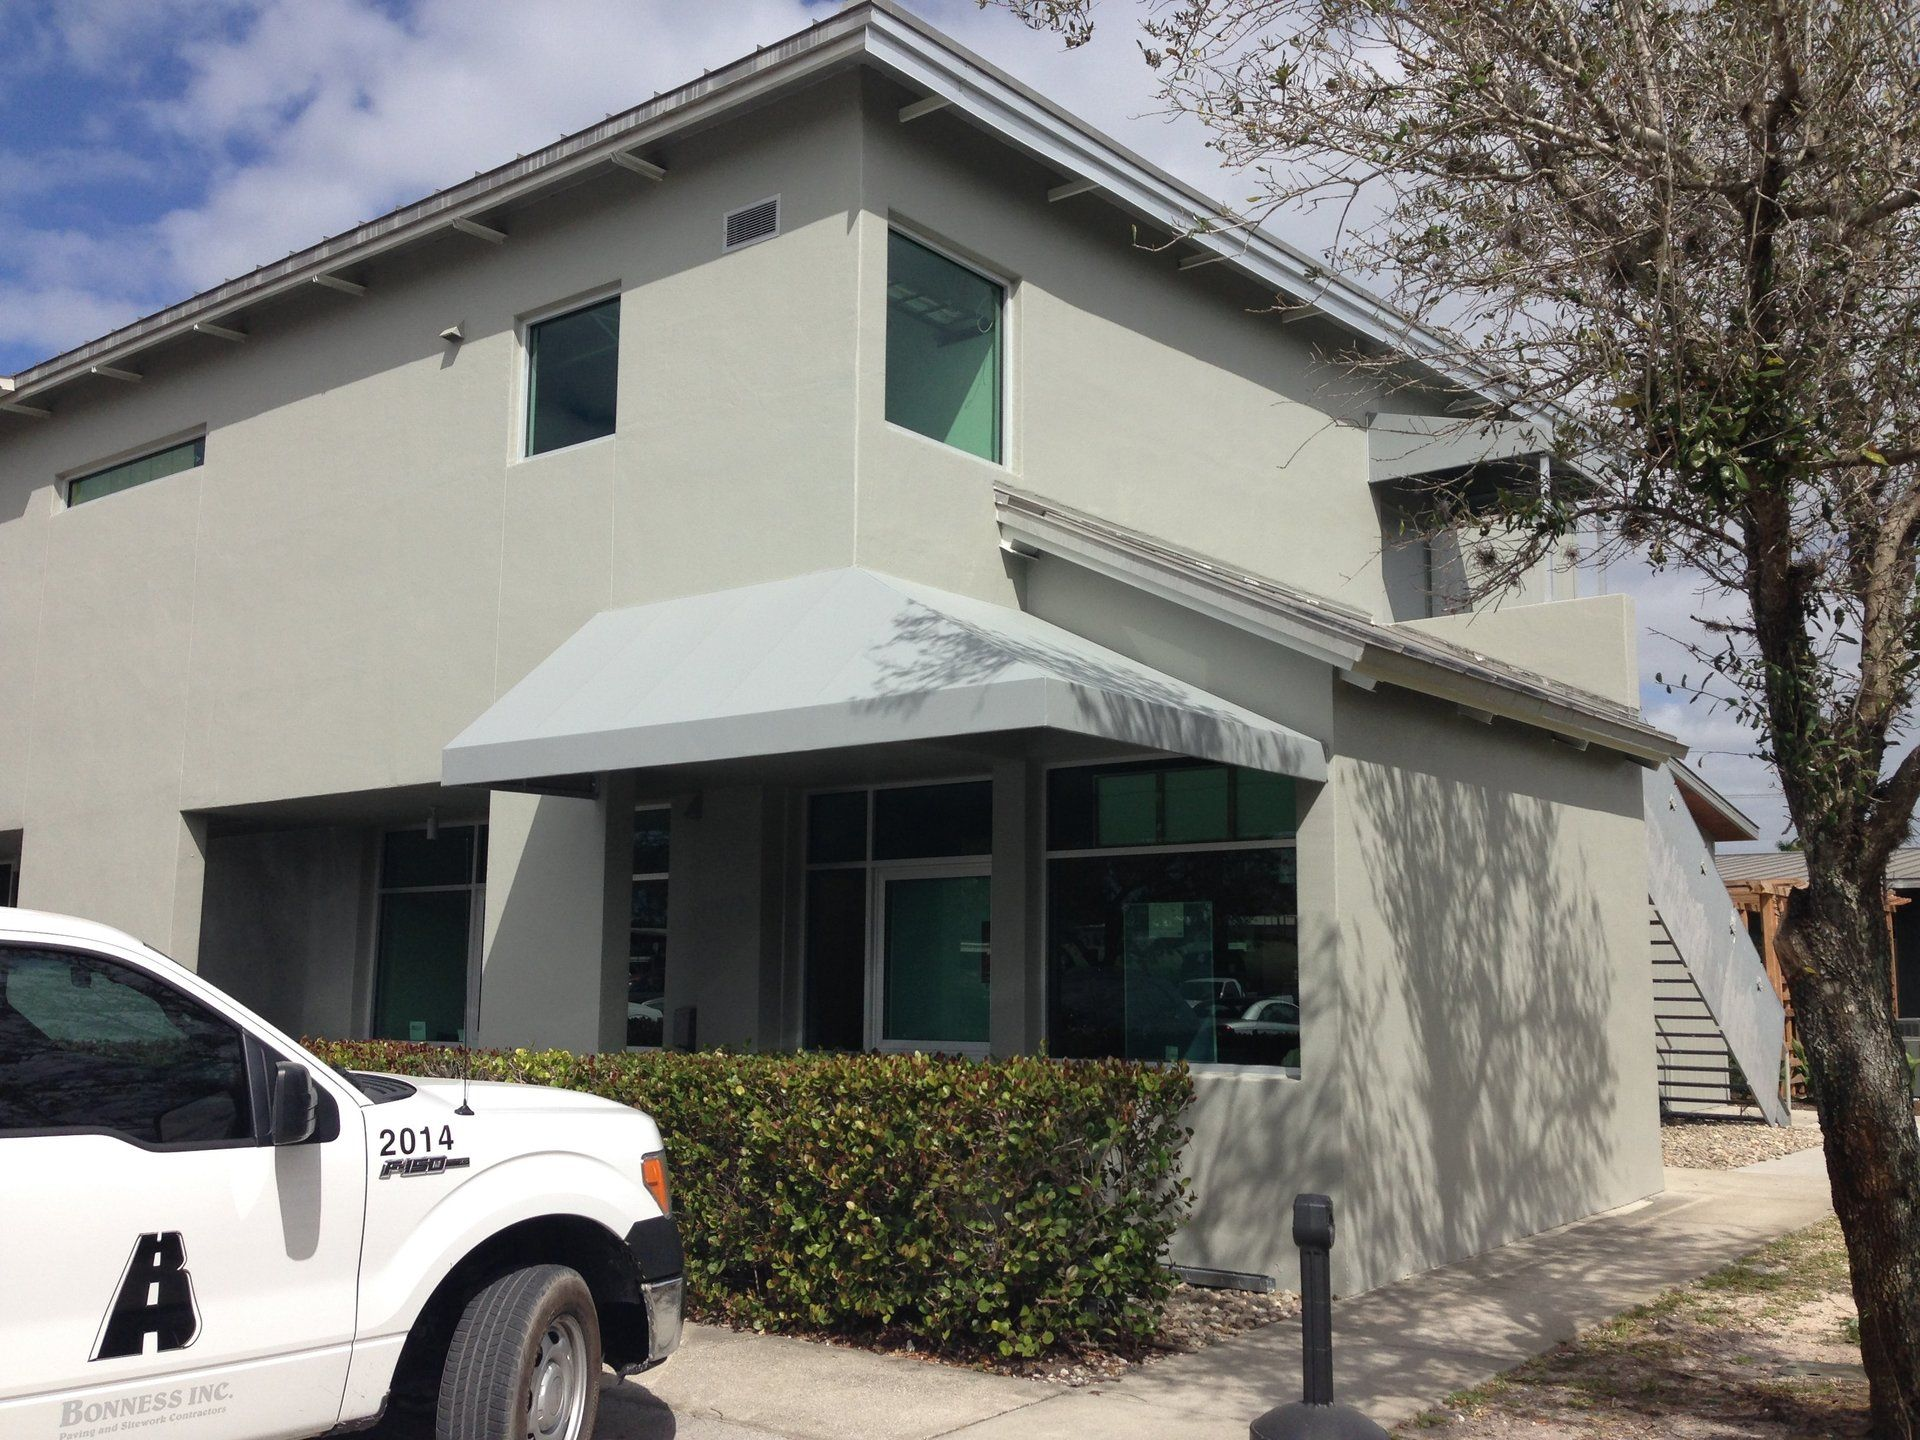 Awnings by Naples Awning Photo Gallery | Naples, FL